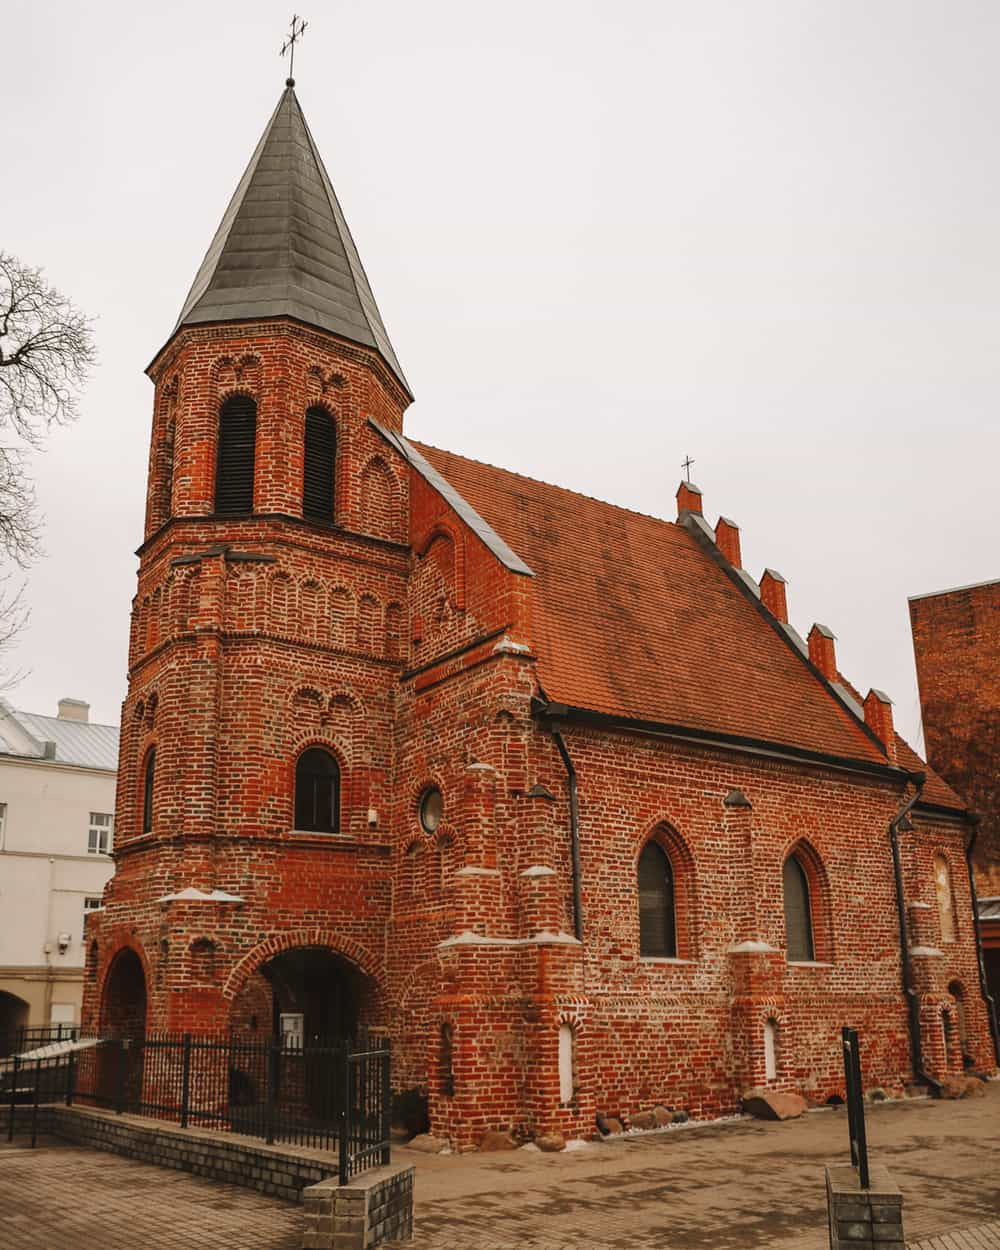 Church of St Gertrude, Things to do in Kaunas